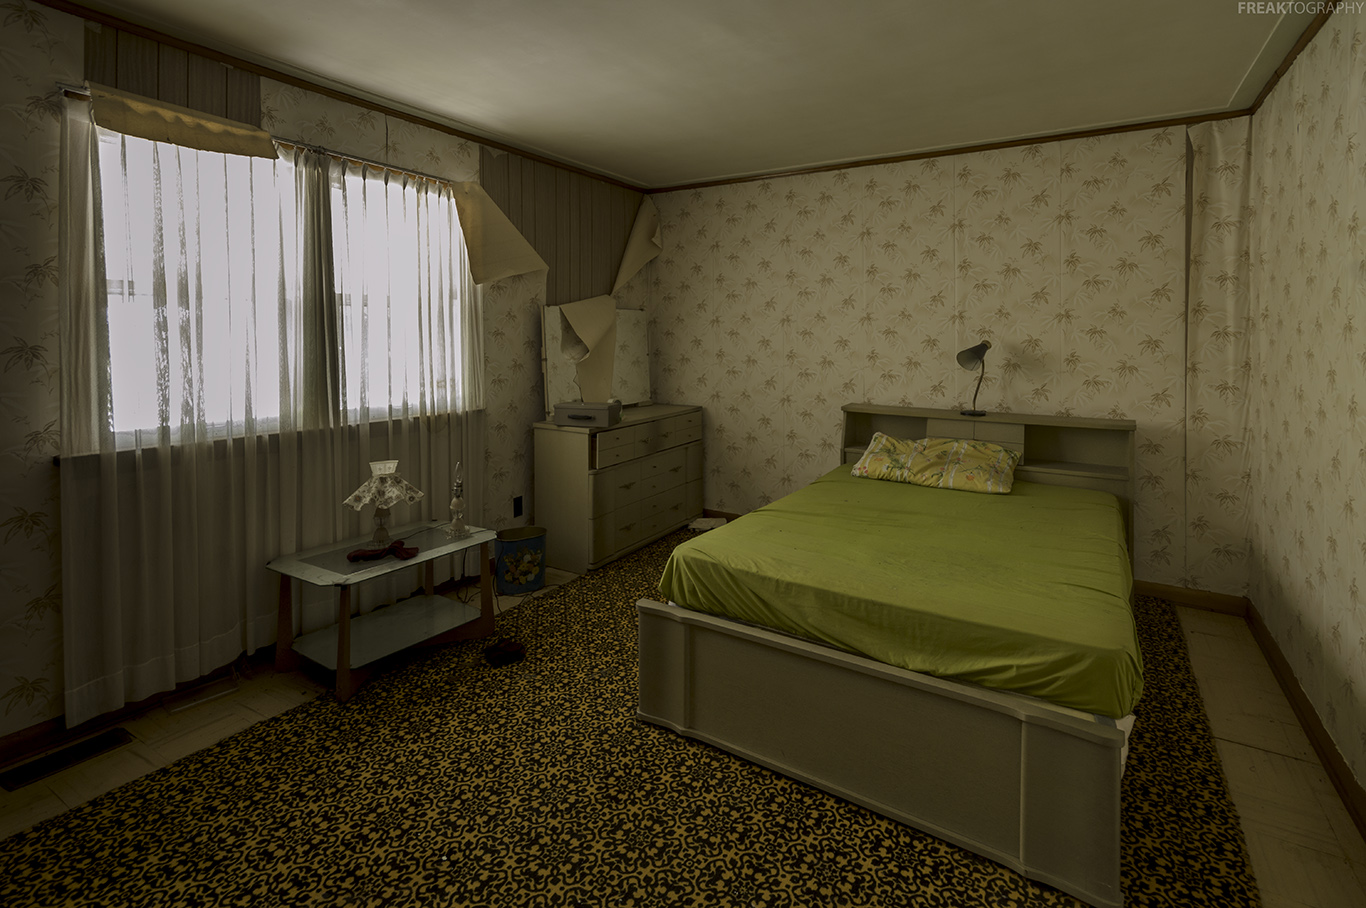 An in tact bedroom inside an abandoned house in Ontario.